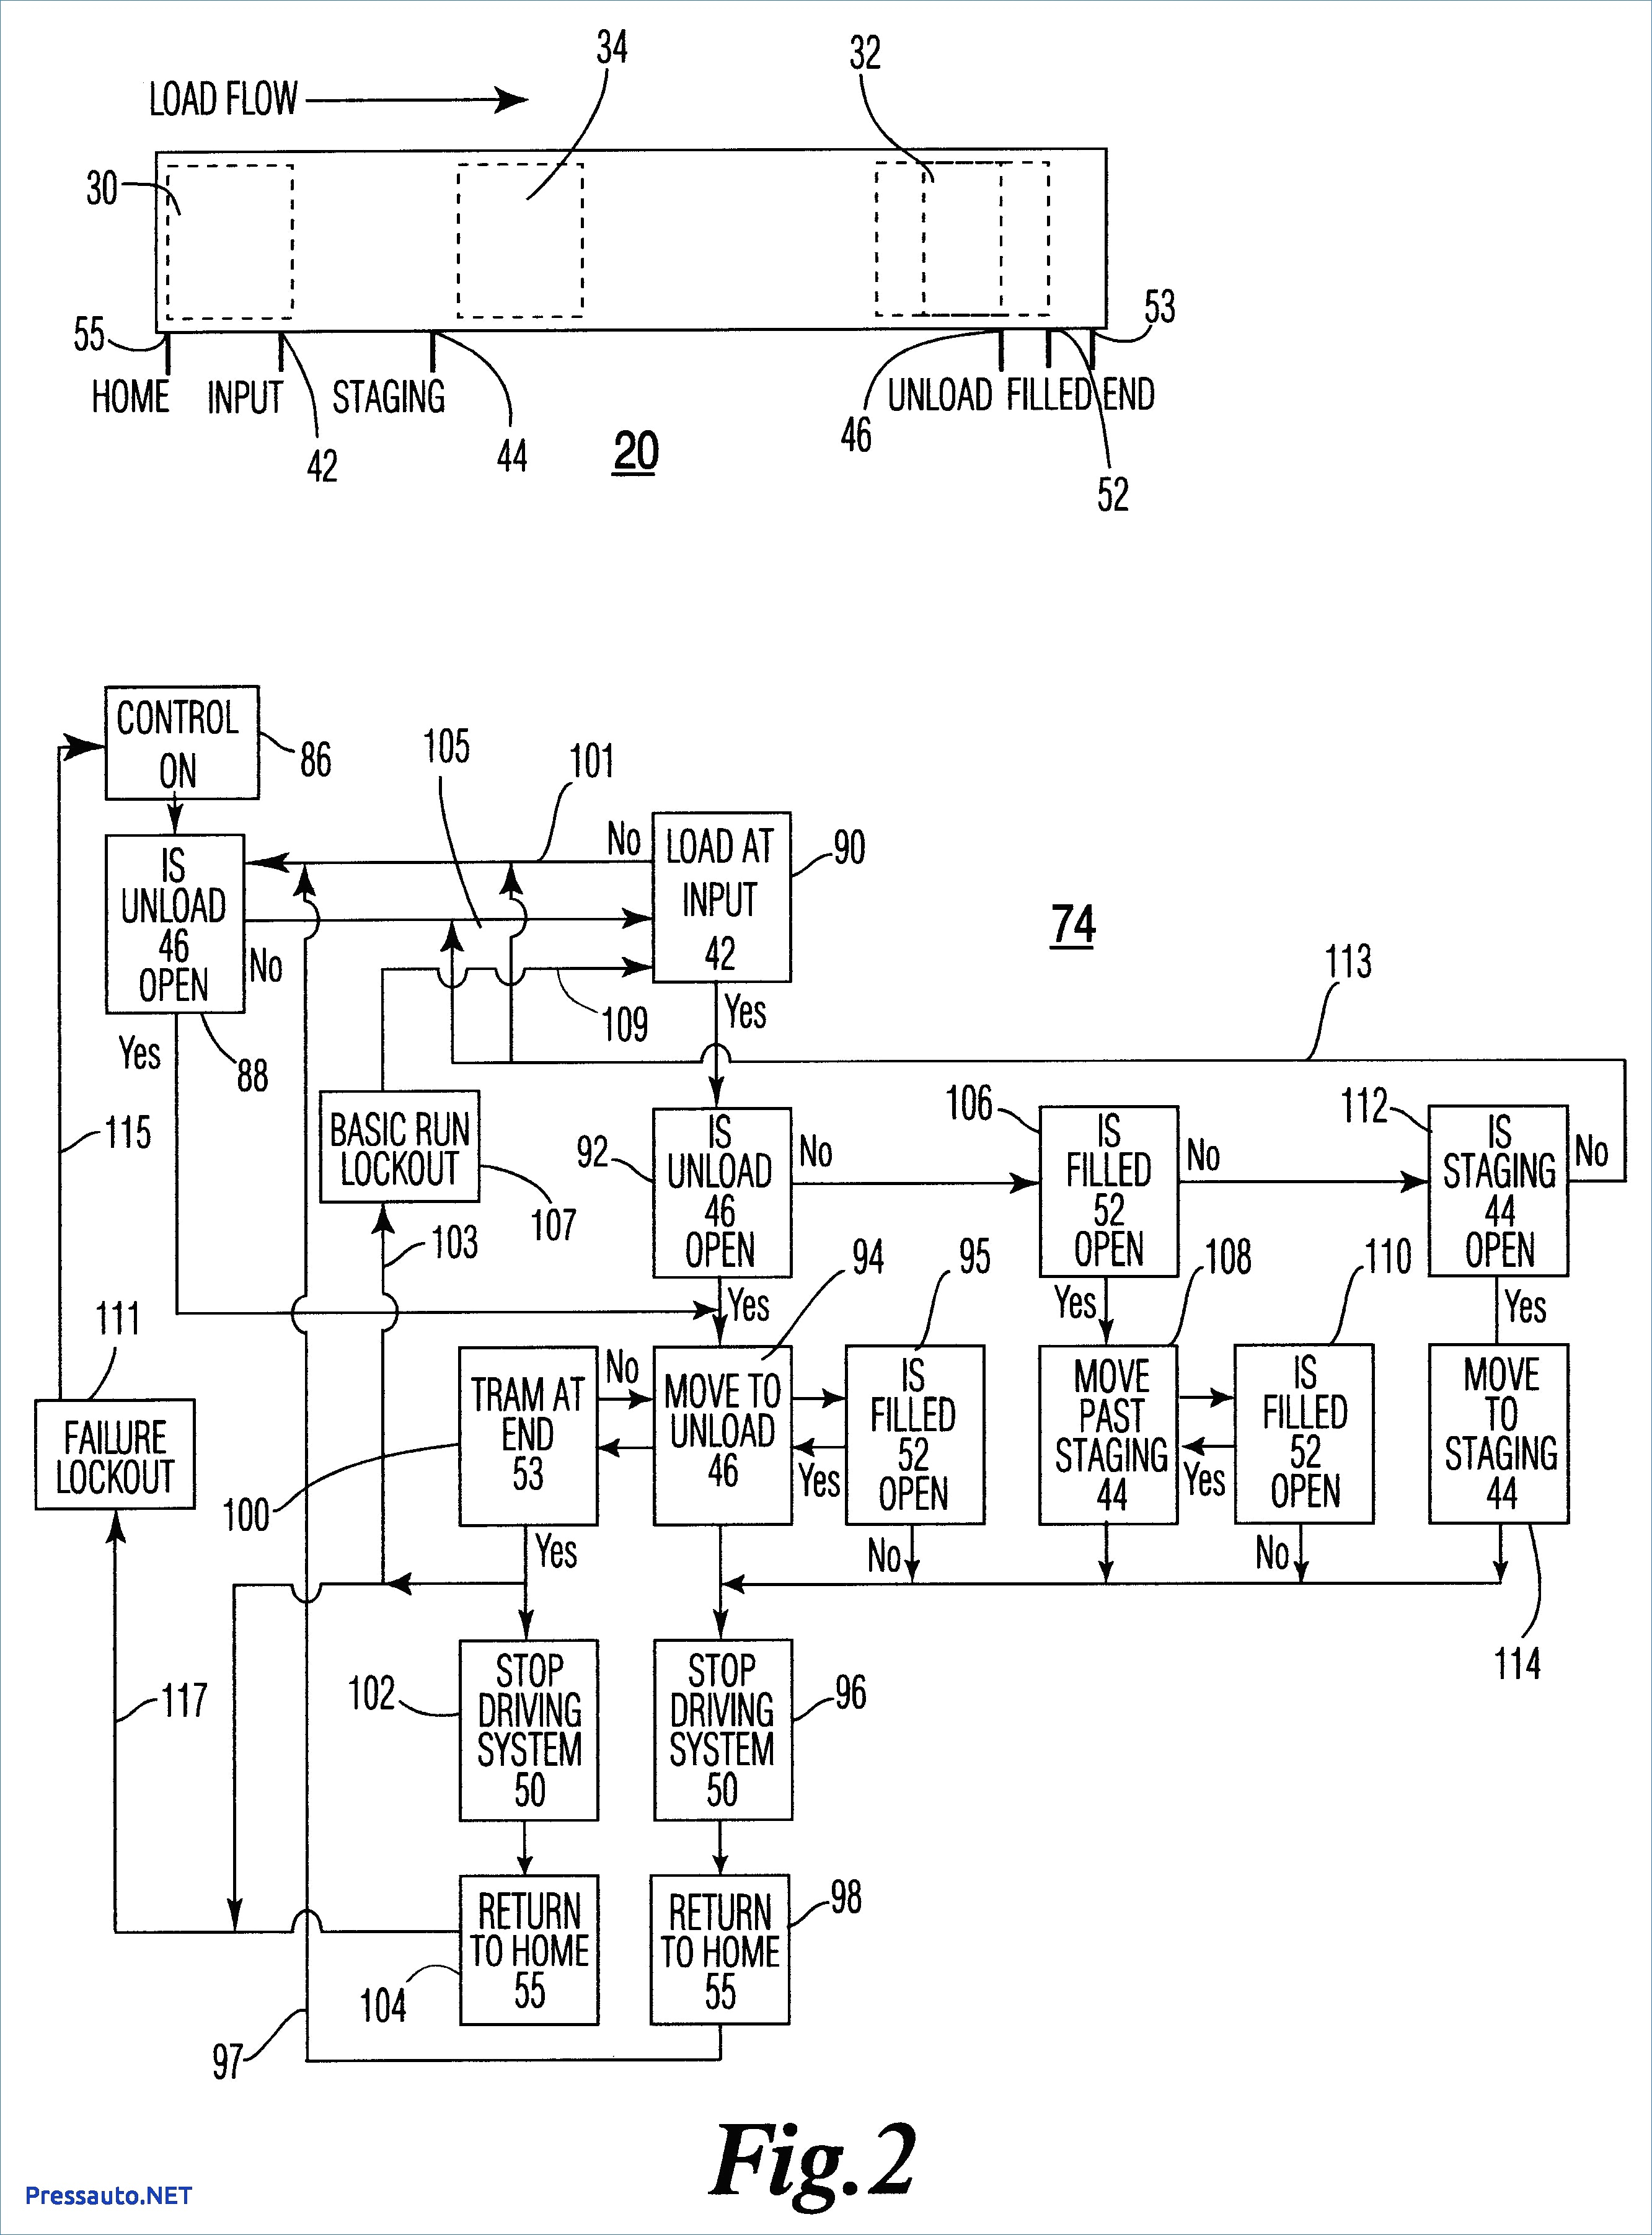 buck and boost transformer wiring diagram Collection-In Acme Buck Boost Transformer Wiring Diagram For Transformers Diagrams 14-d